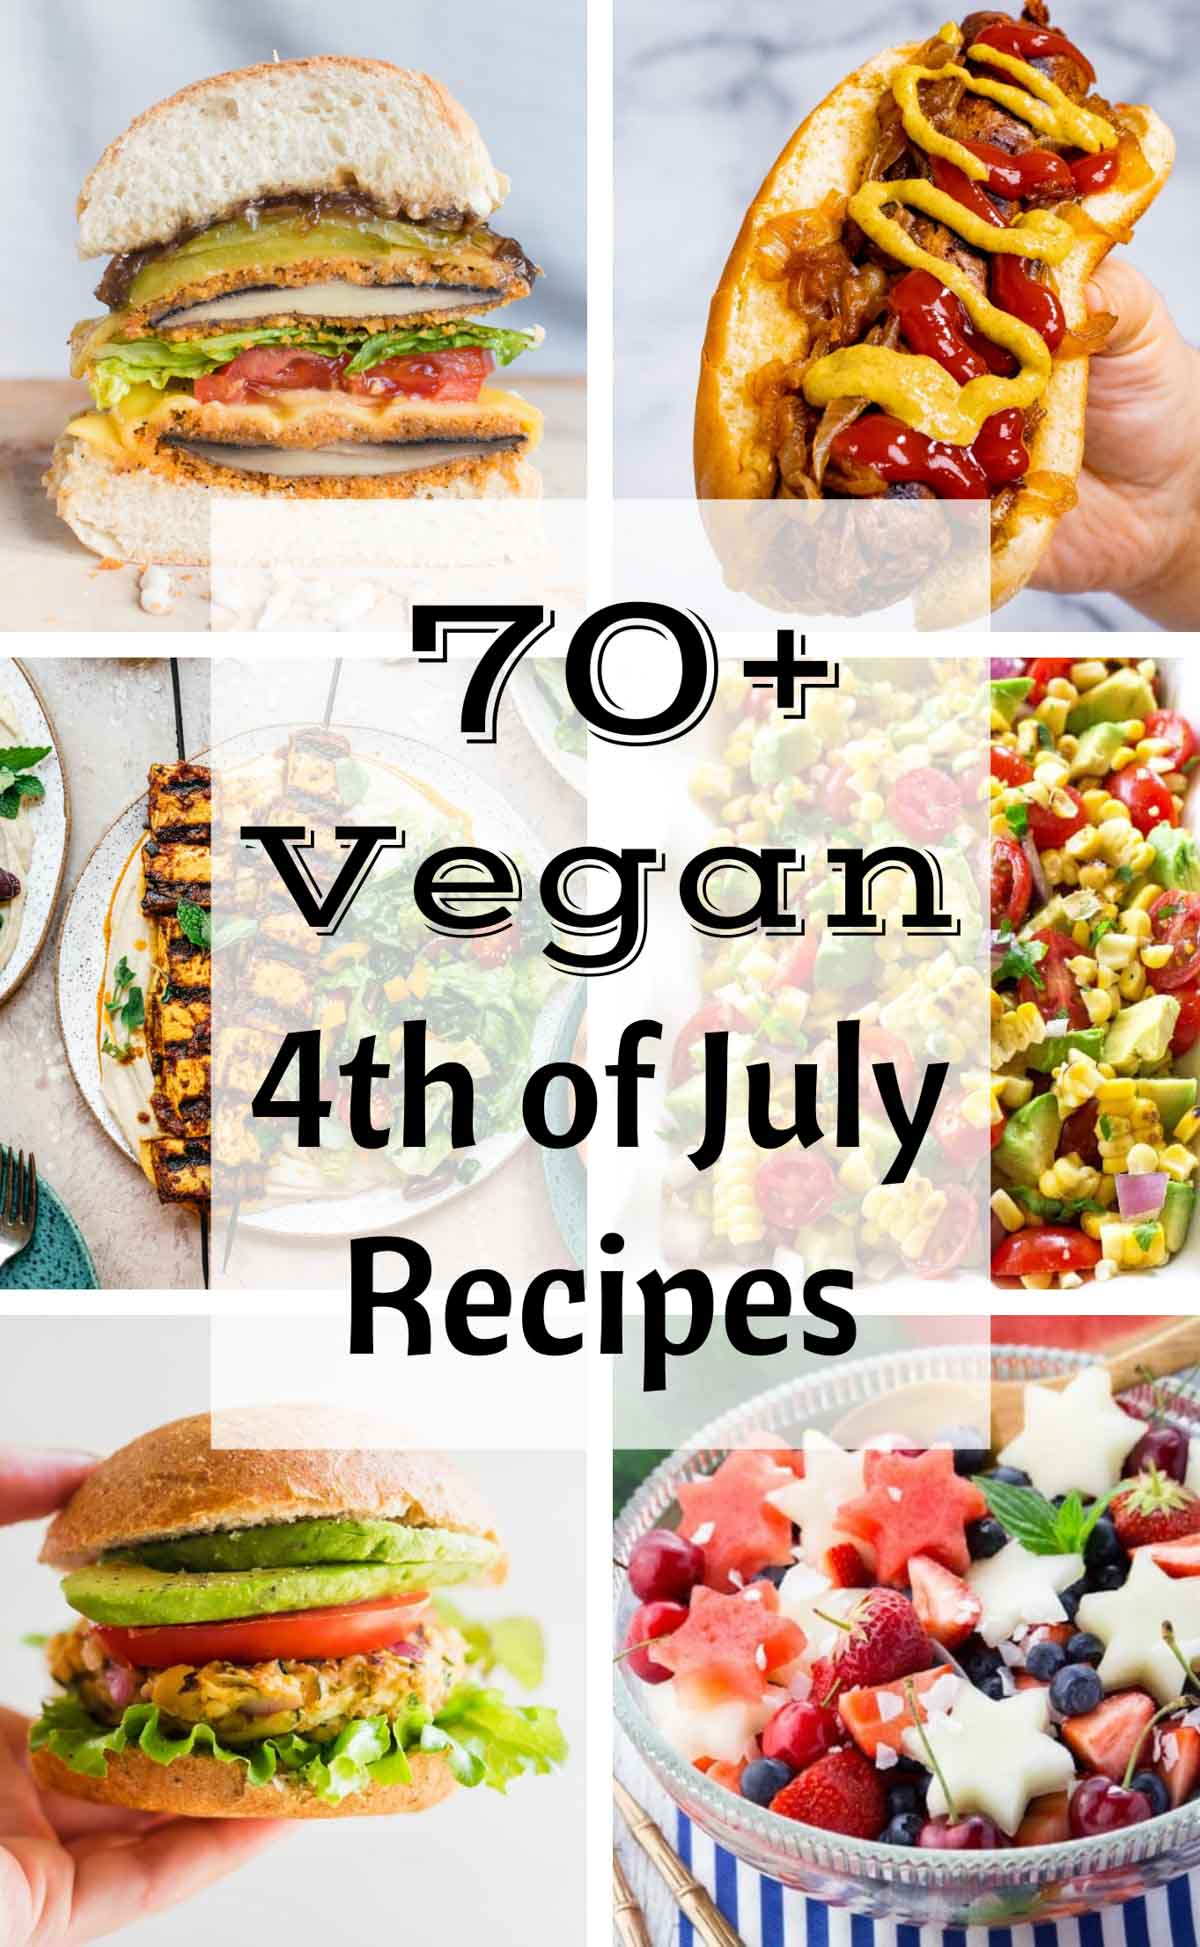 Collage image of vegan 4th of July recipes